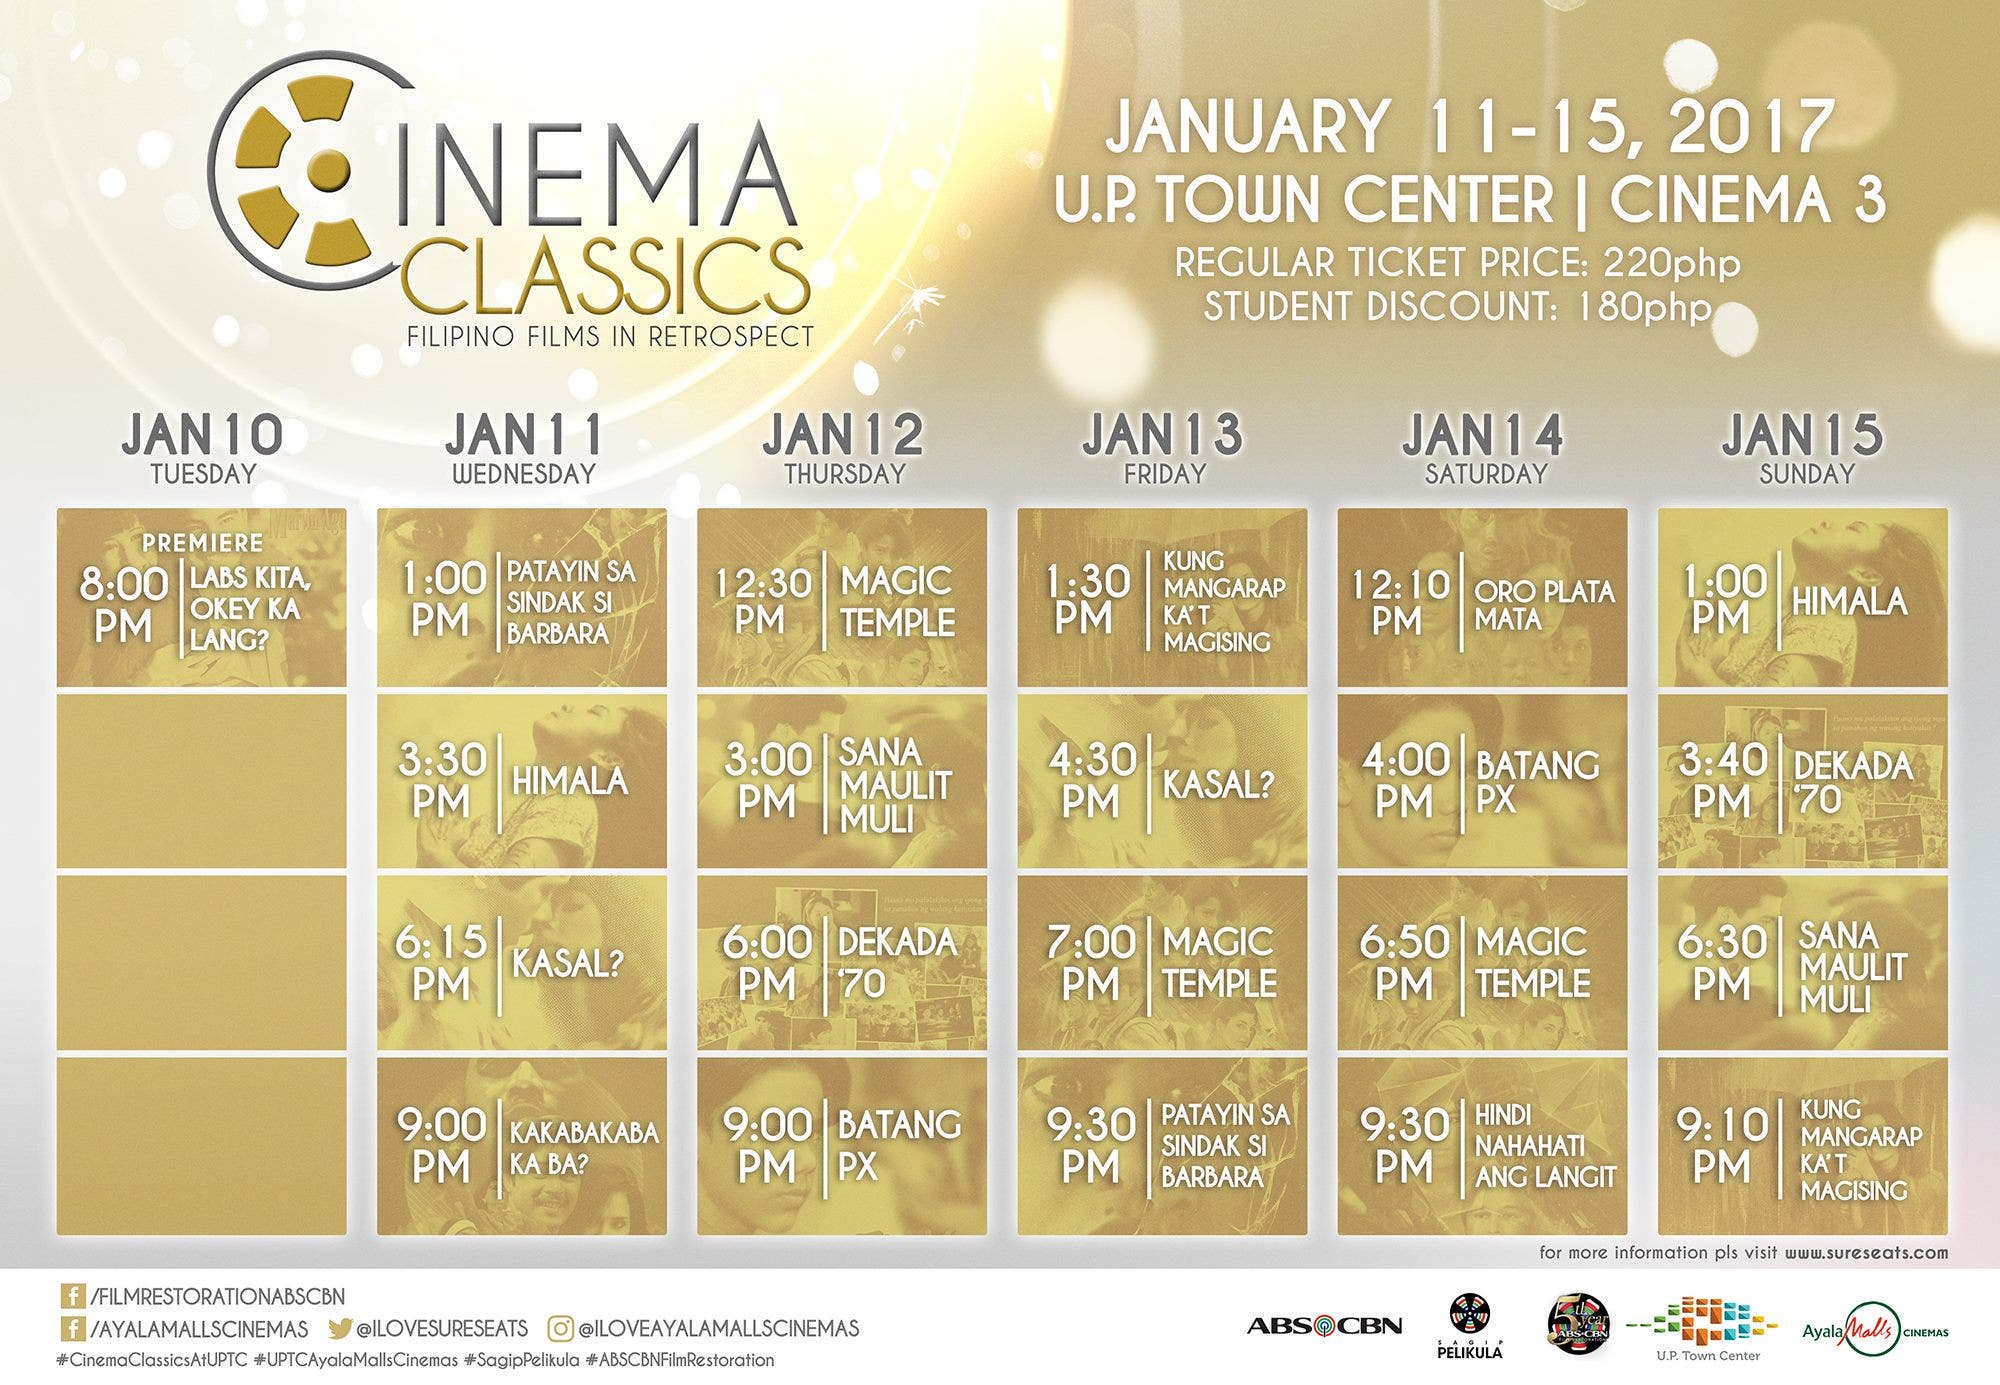 up-town-center-classic-film-showing